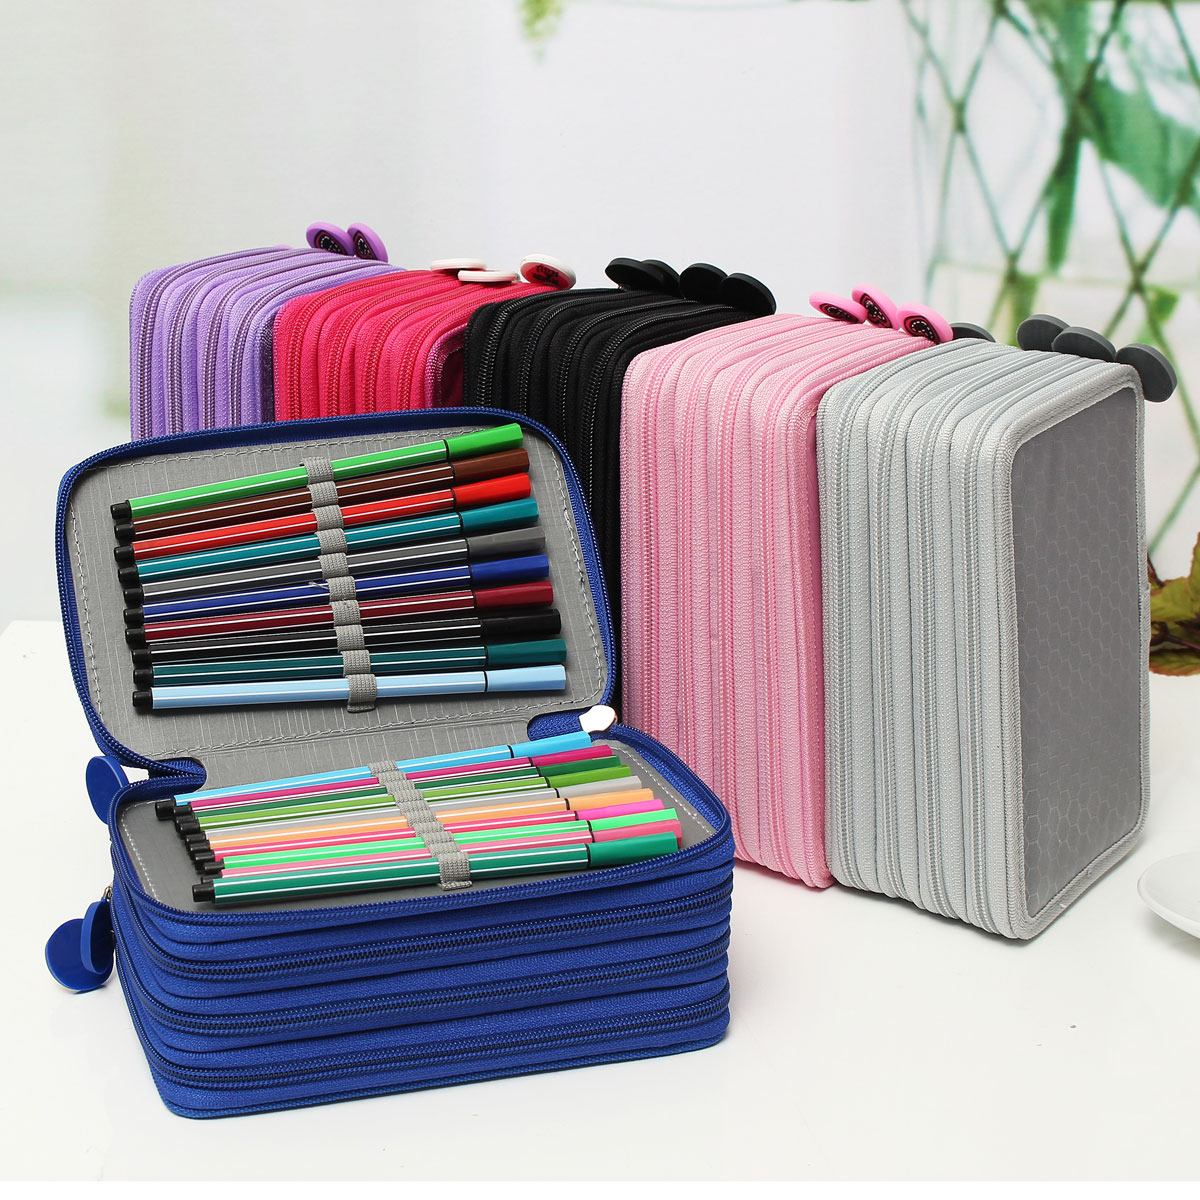 72 Holders 4 Layer Portable Oxford Canvas Bag School Pencils Case Pouch Brush Pockets Bag Pencil Holder Case School Supplies